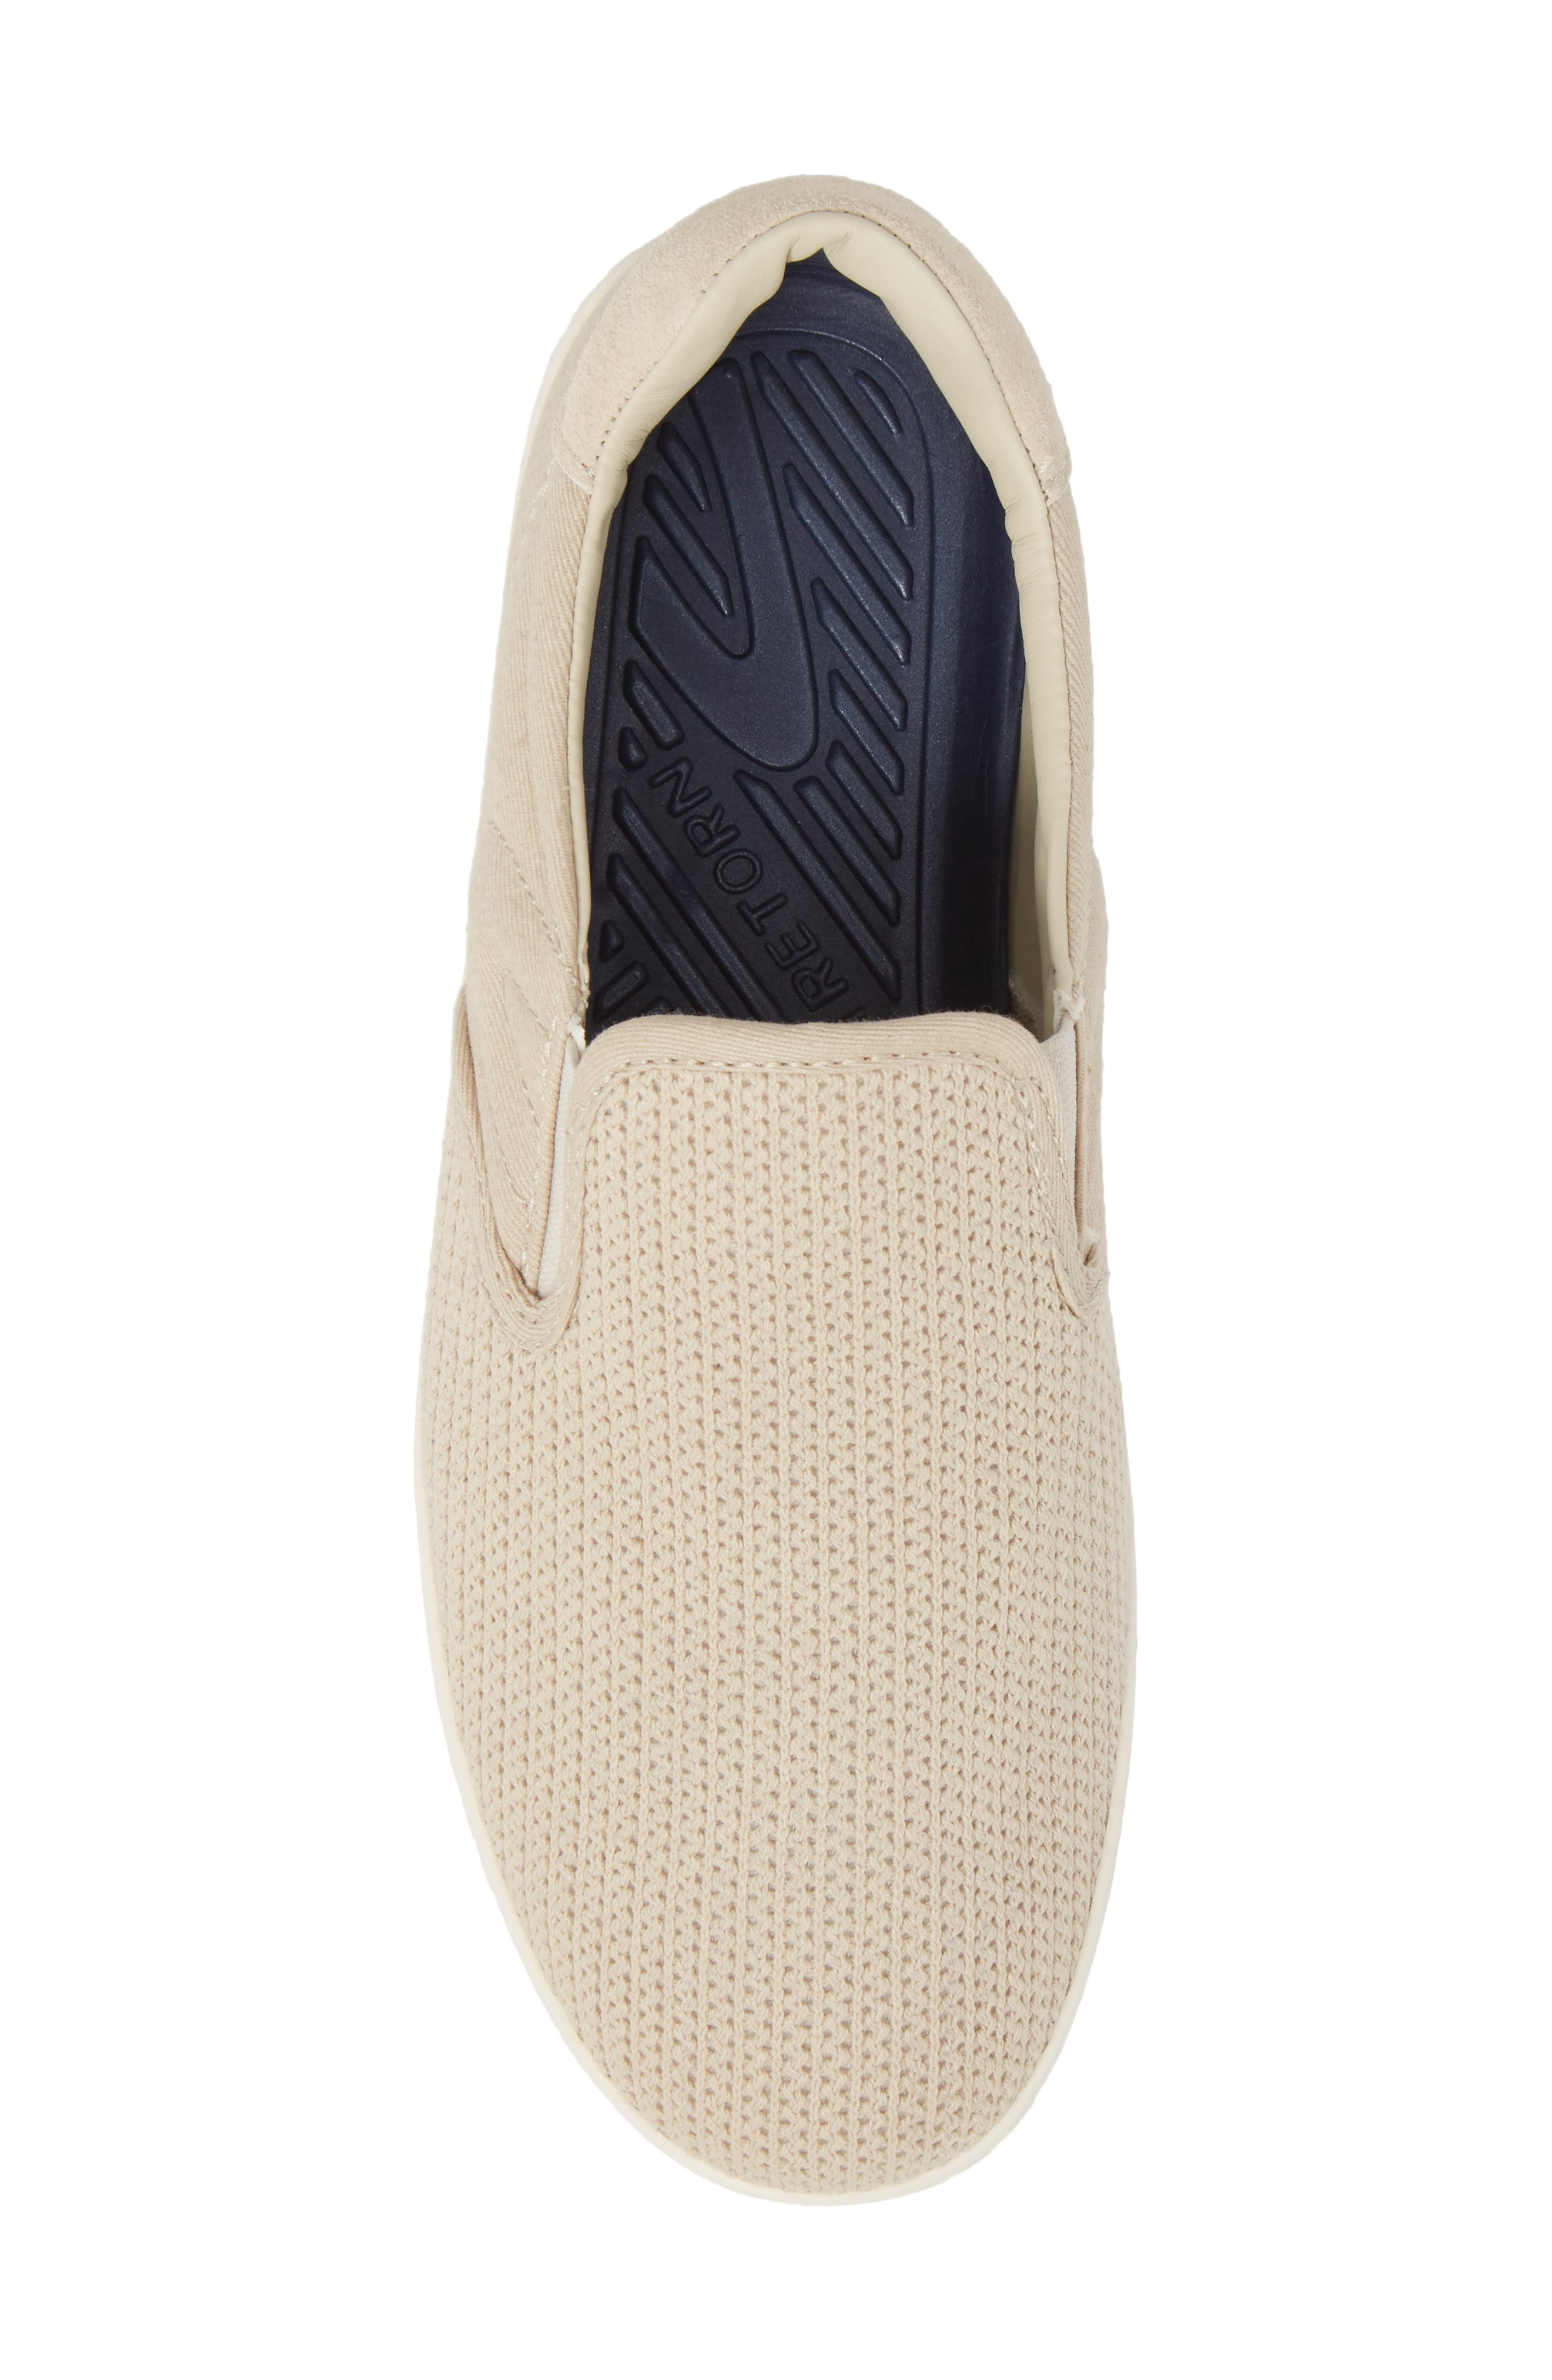 Cruz Mesh Slip-On Sneaker,                             Alternate thumbnail 15, color,